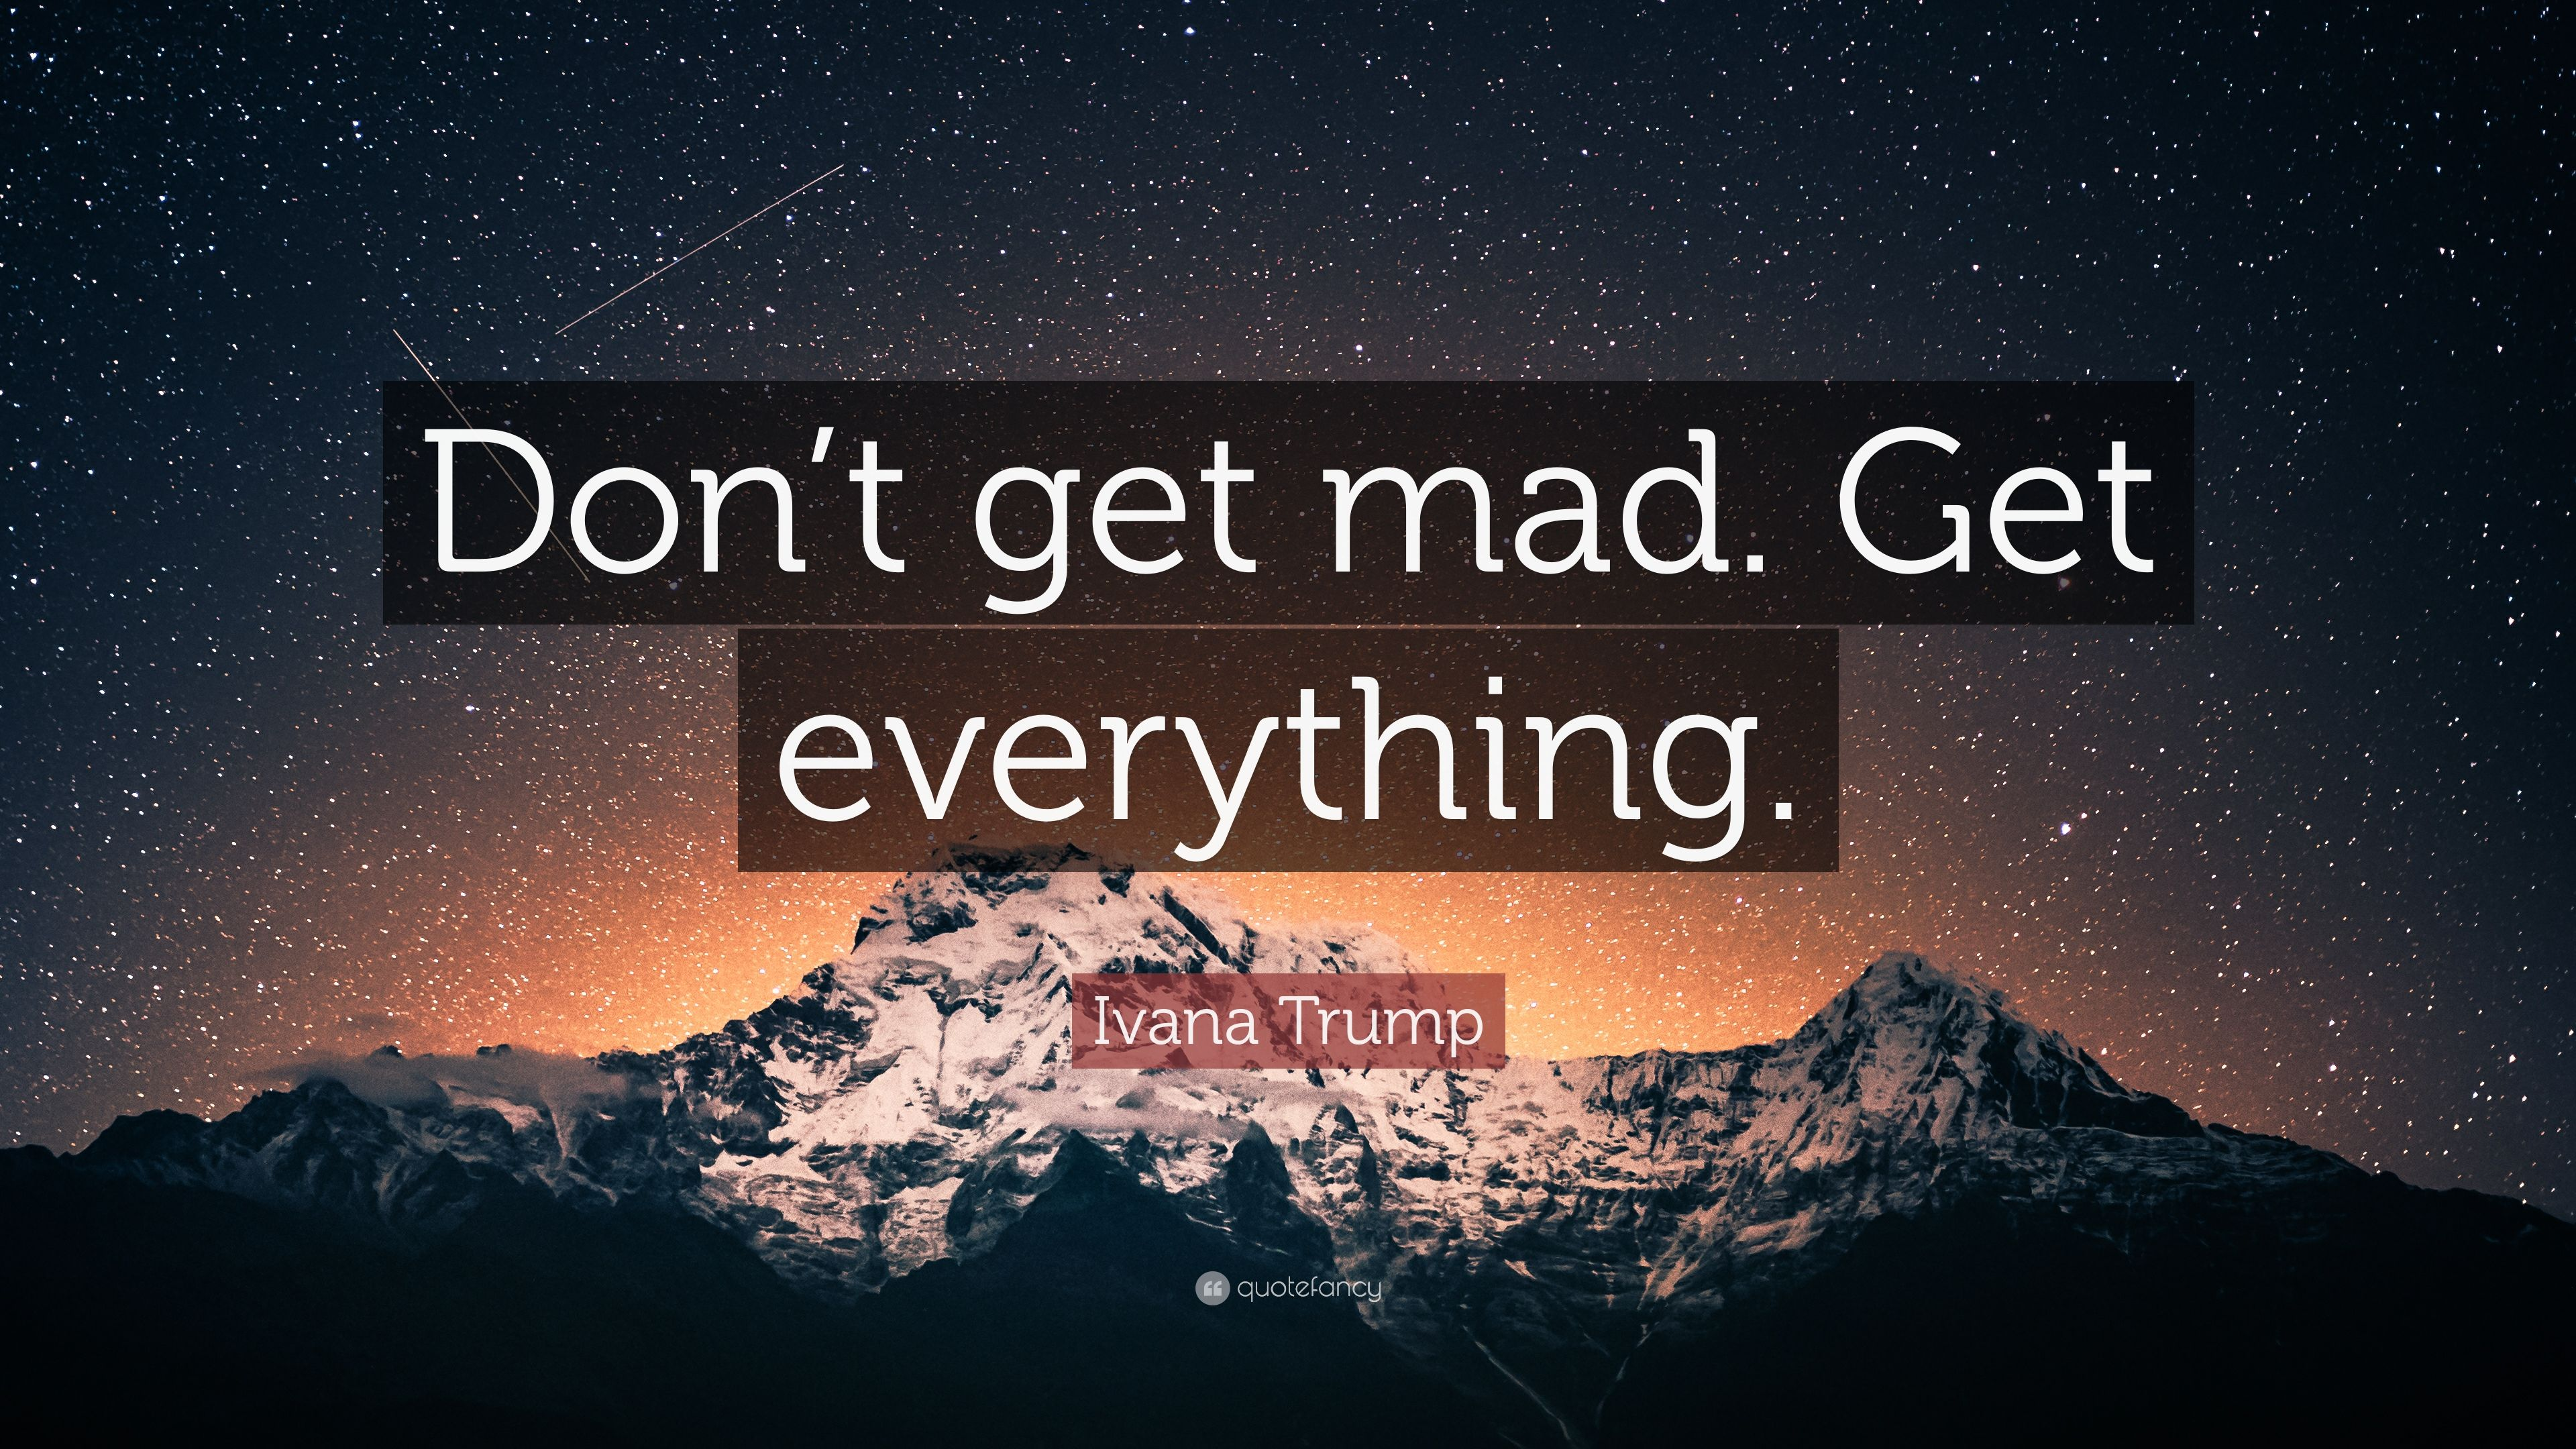 Ivana Trump Quote: U201cDonu0027t Get Mad. Get Everything.u201d